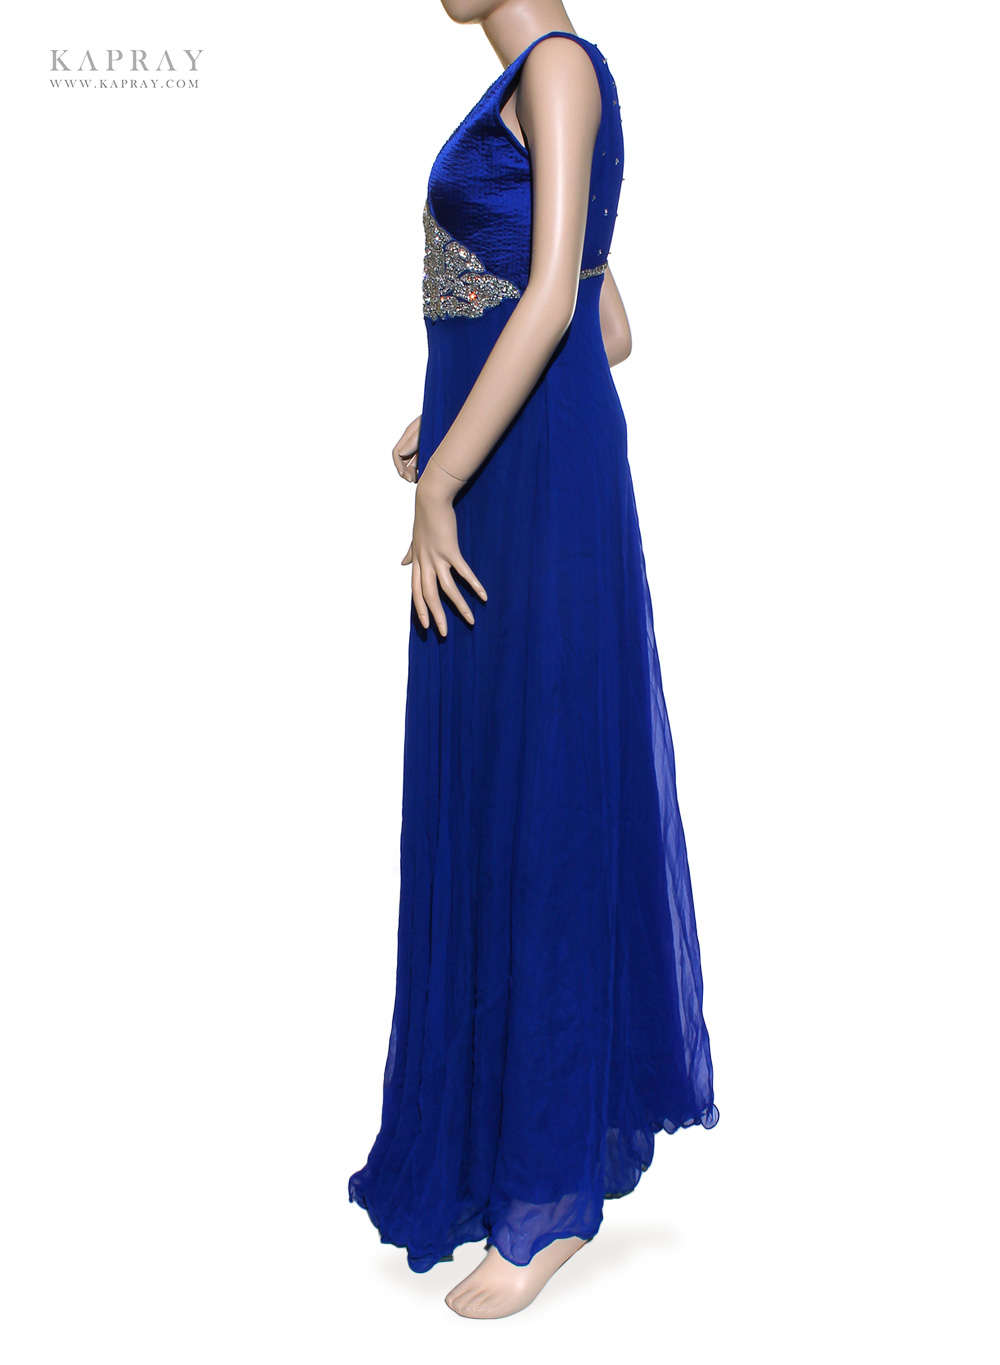 Bridal maxi dress in navy blue kapray for Maxi dresses for wedding party